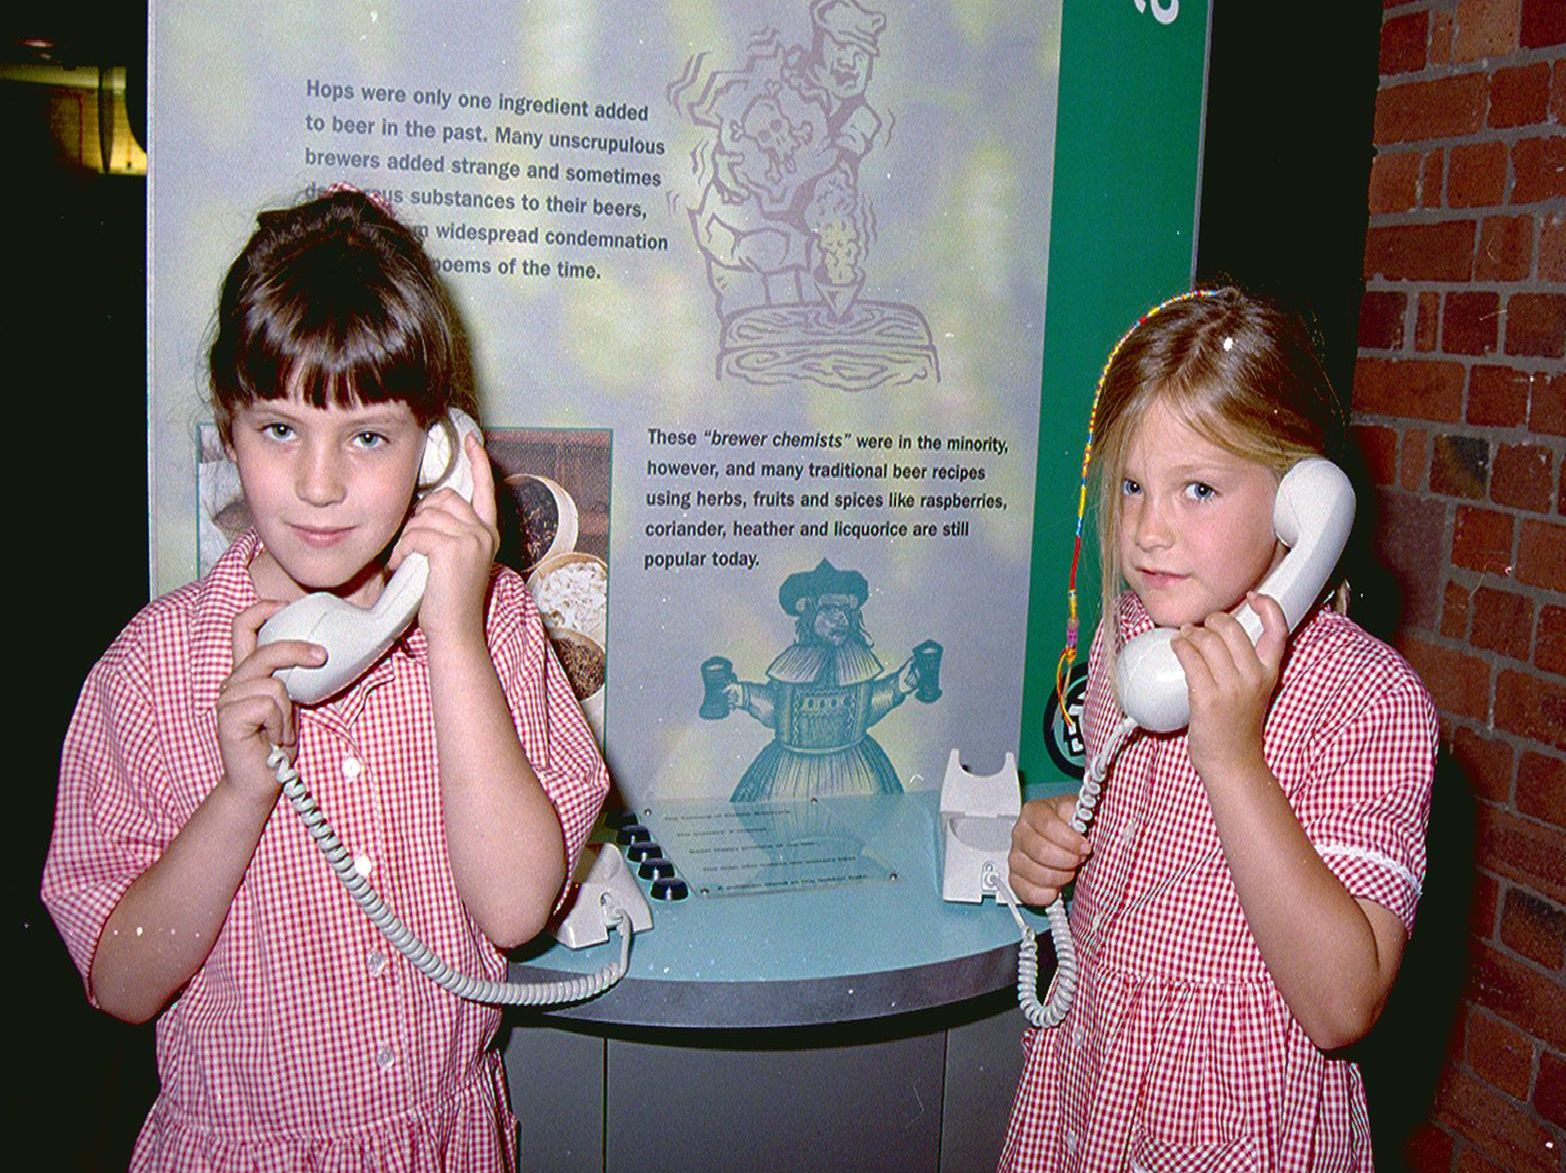 1998: These two school children are enjoying the activities at Mansfields Making It centre. Whos on the telephone?